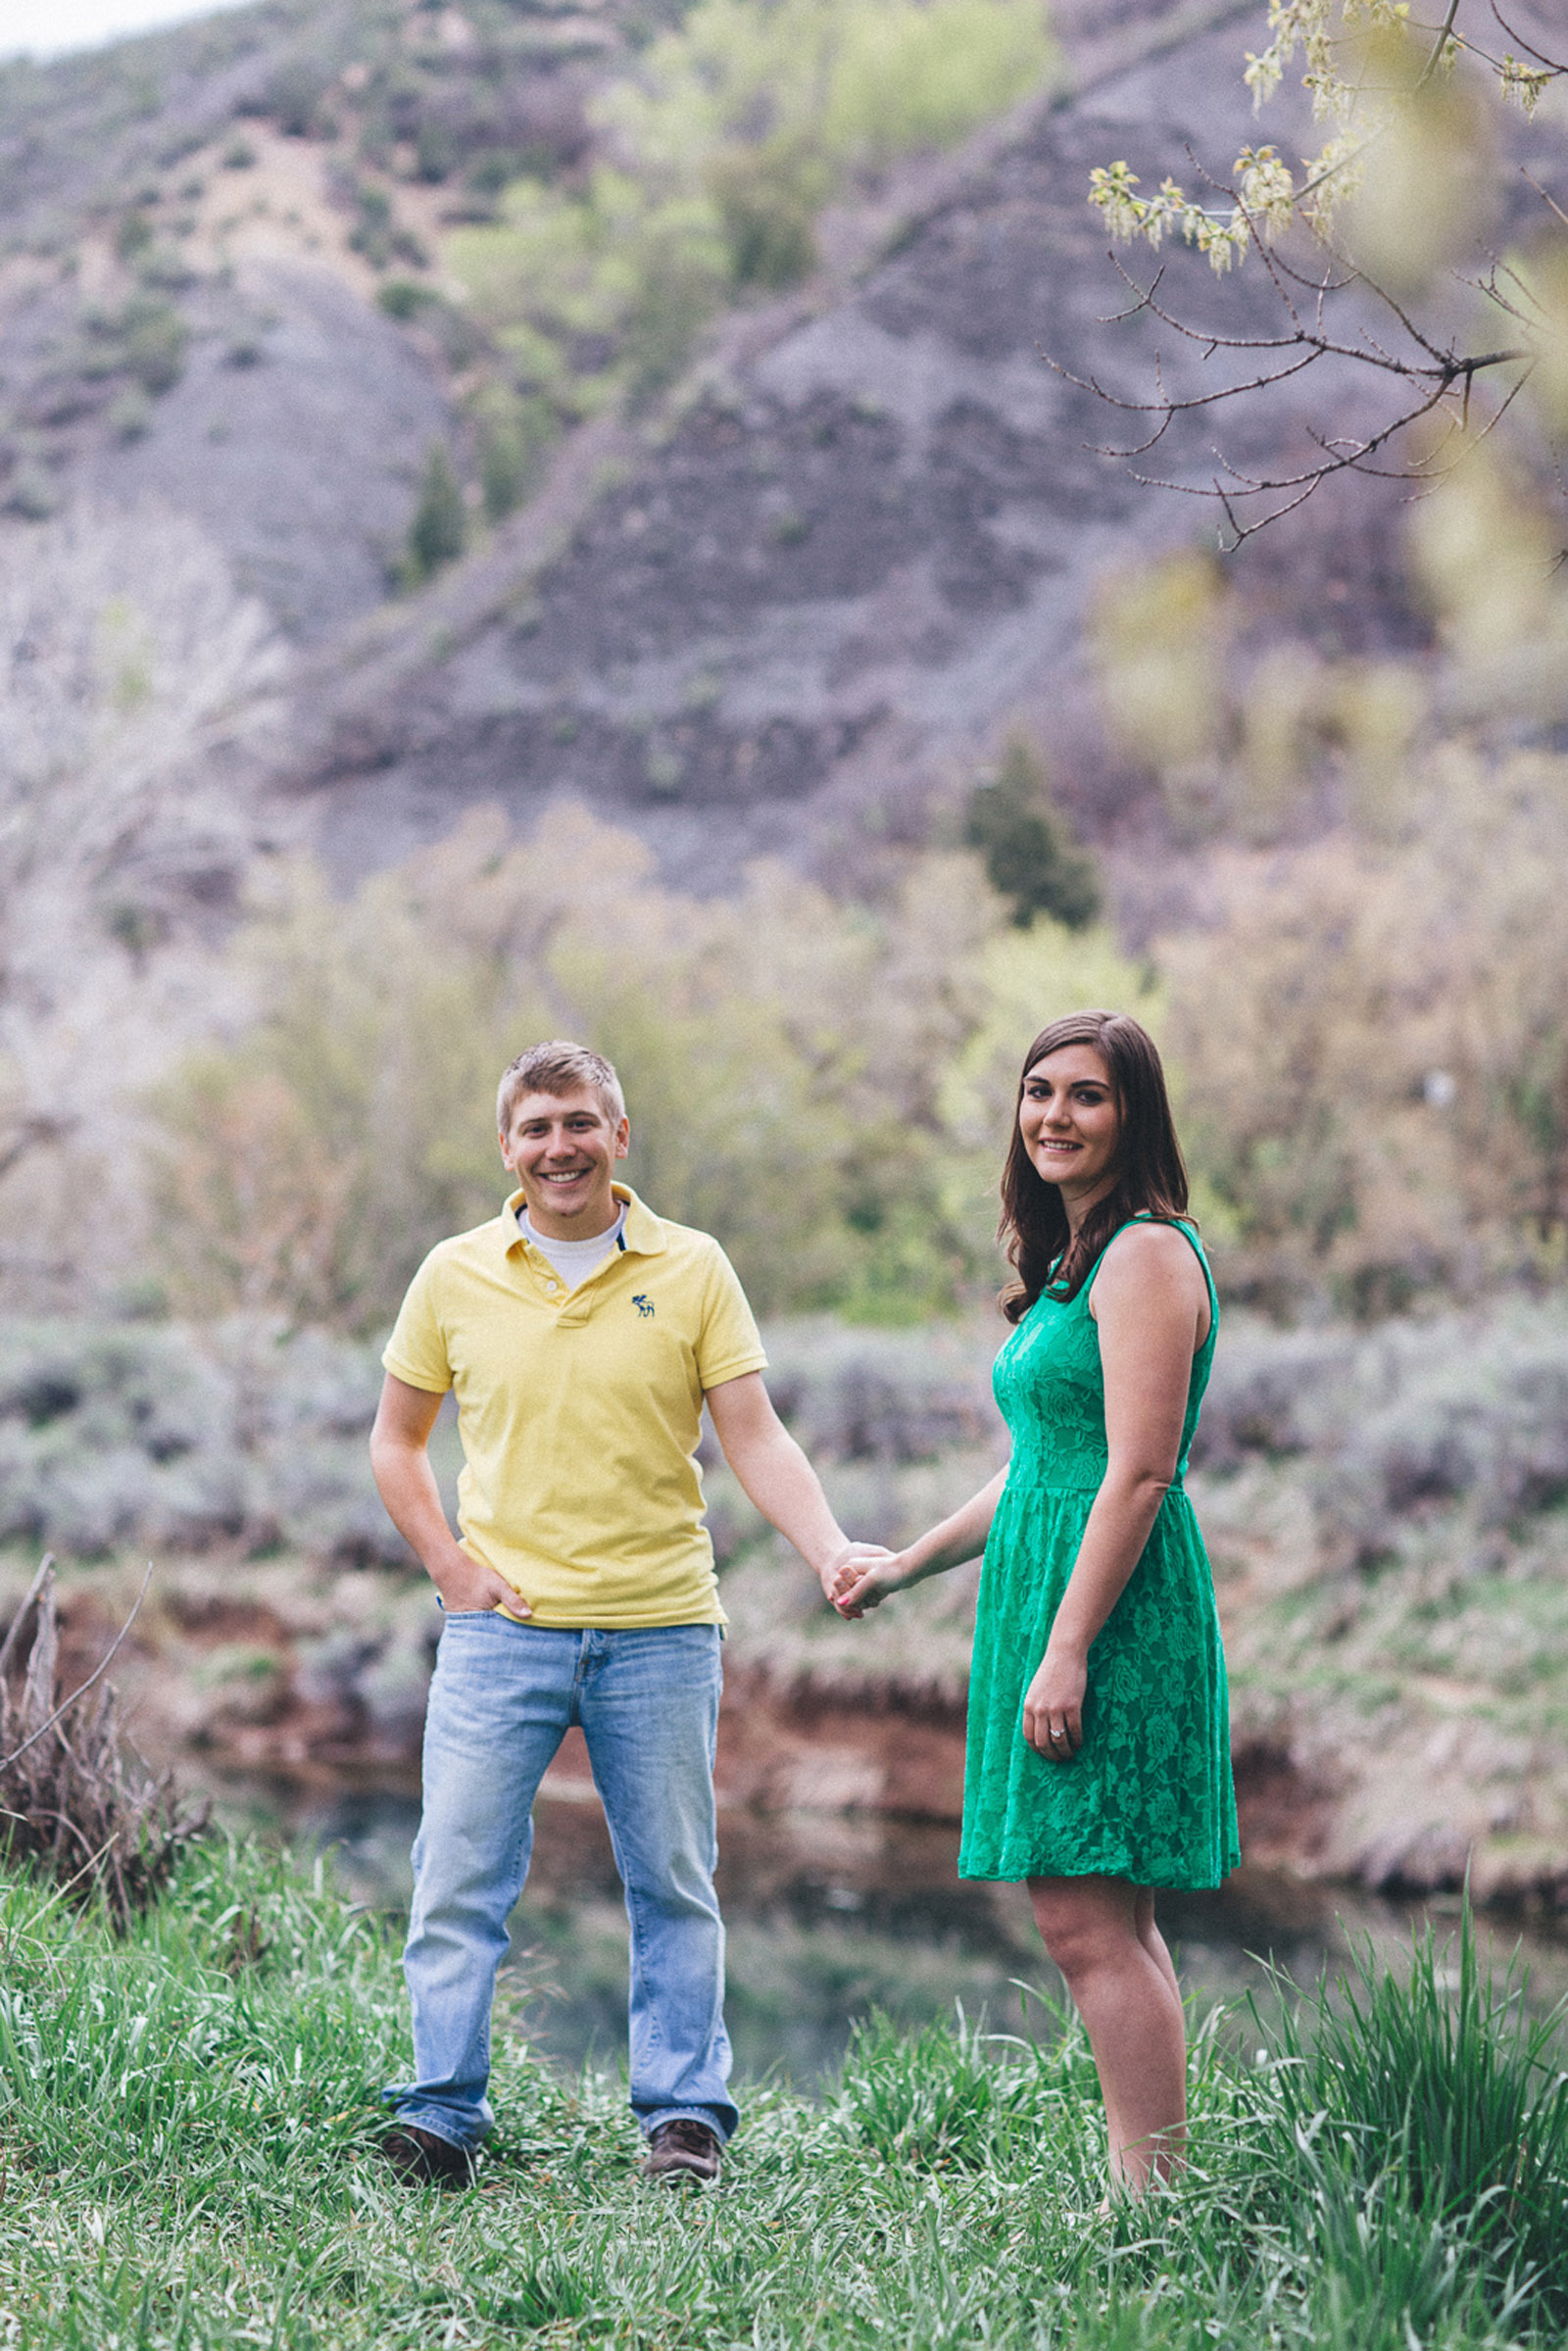 042-engagement-trees-fun-wedding-train-laughing-durango-colorado-farmington-candid